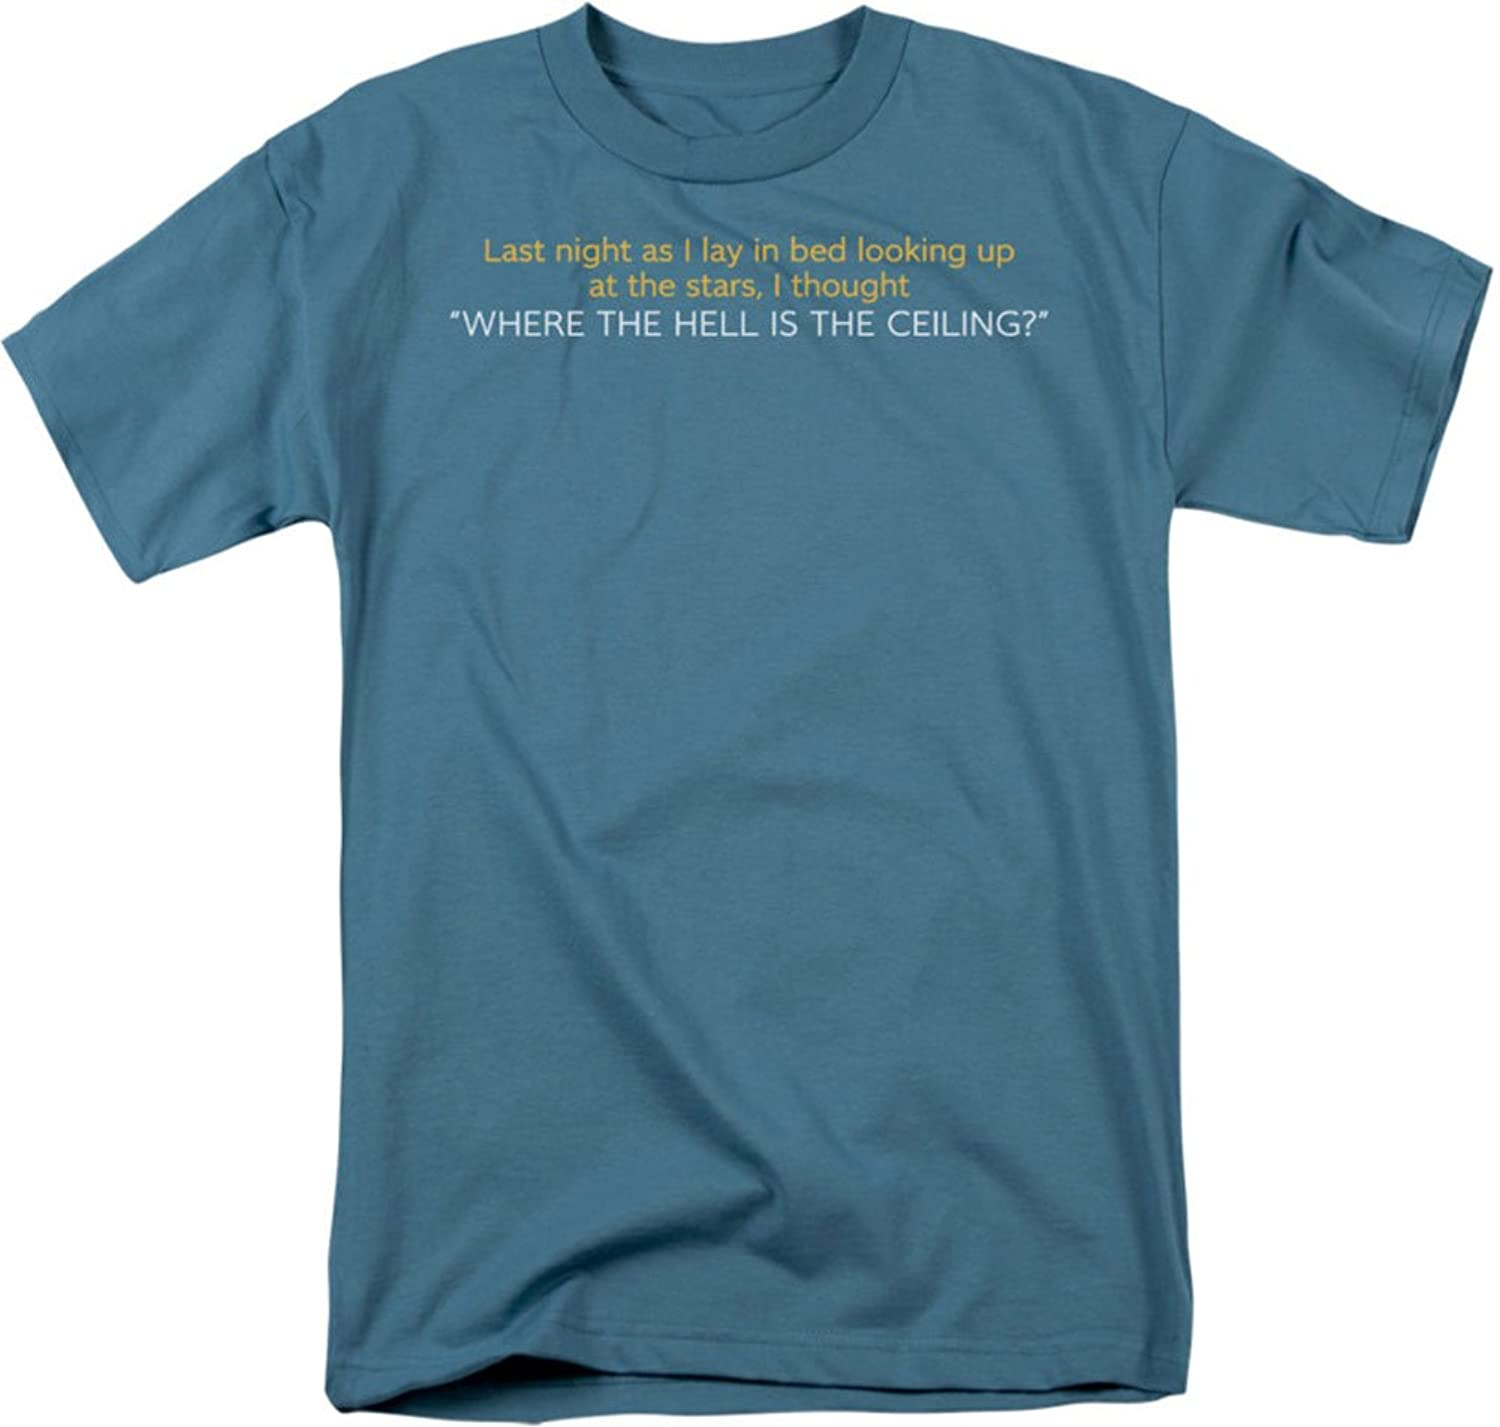 Funny Tees - Mens Where Is The Ceiling T-Shirt